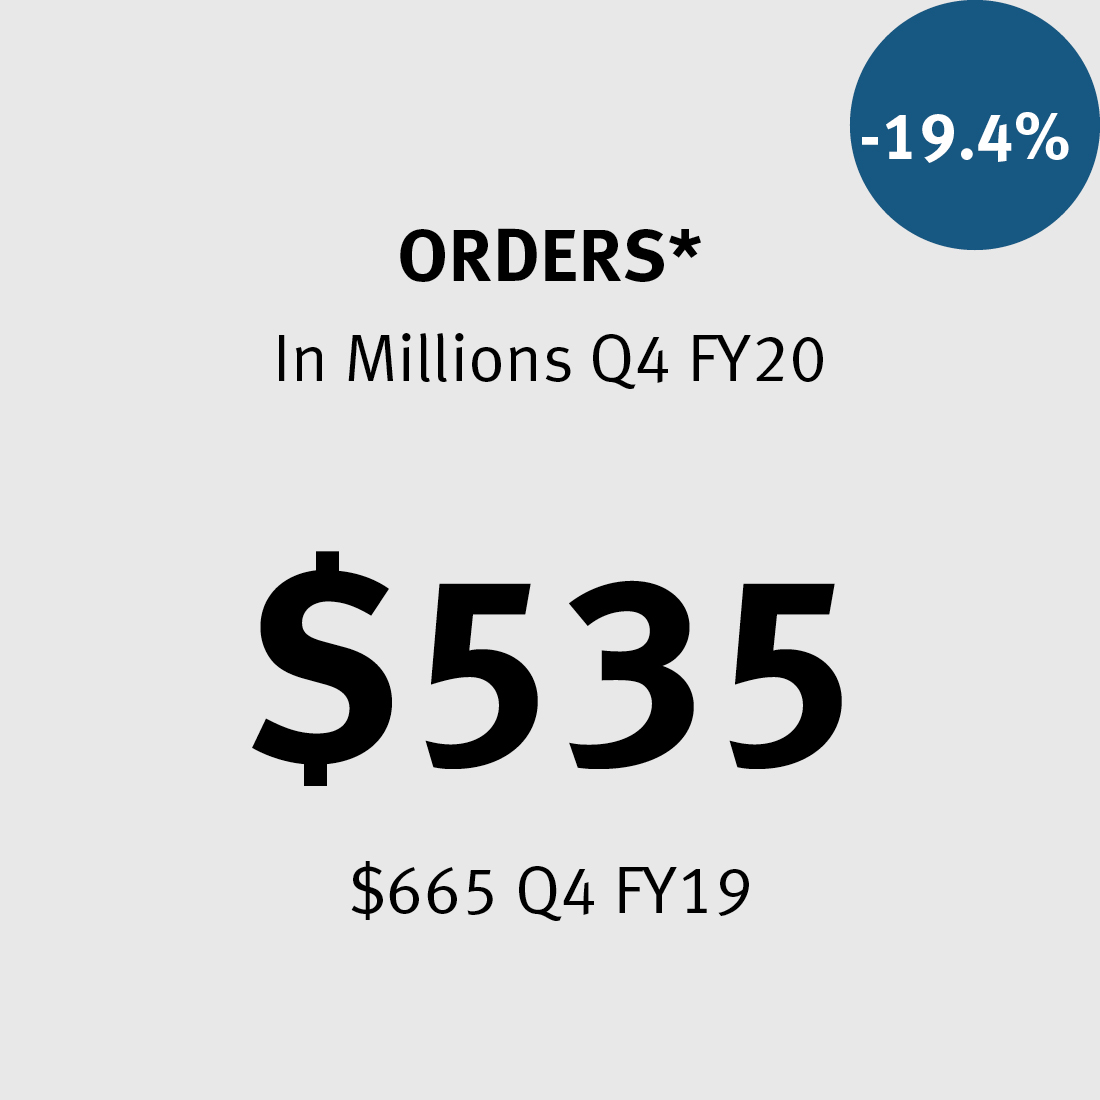 Orders ** $535M ($665M in FY19) -19.4%